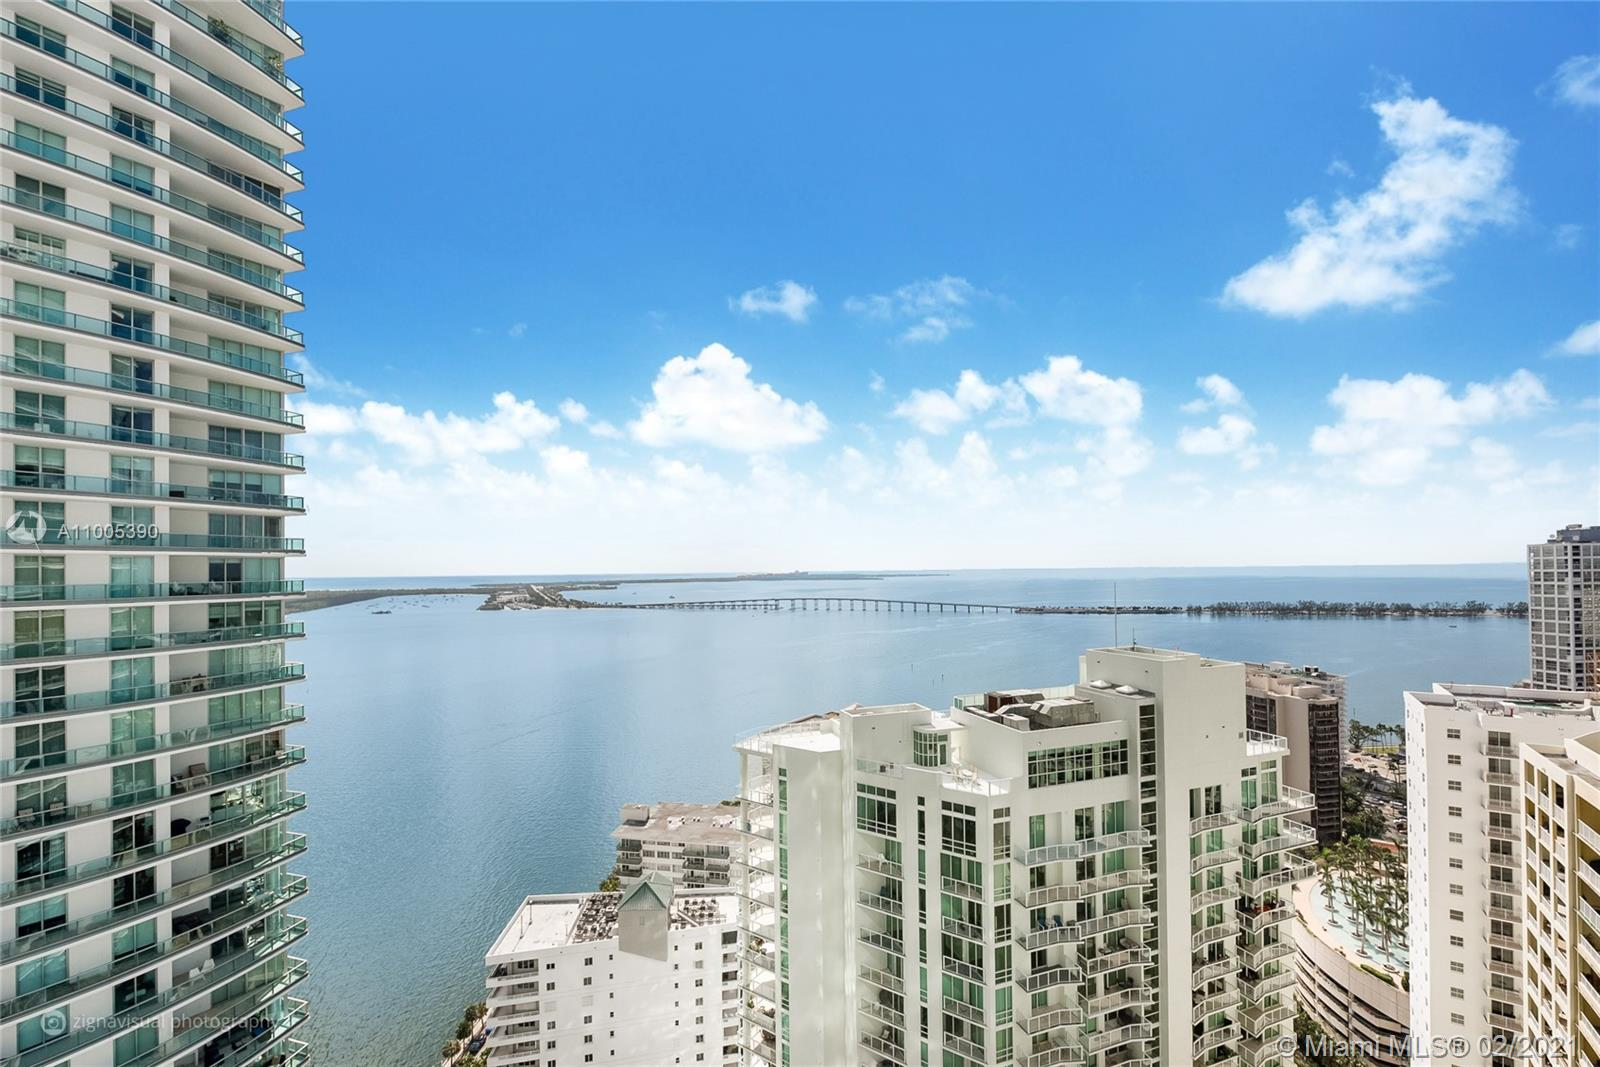 "SPECTACULAR, BRIGHT AND SPACIOUS 2 BED 2 BATH PLUS DEN UNIT ON THE 34TH FLOOR OF OUTSTANDING BRICKELLHOUSE CONDOMINIUM.  LOCATED IN THE EXCLUSIVE AND RESIDENTIAL NEIGHBORHOOD OF BRICKELL BAY DRIVE IN BRICKELL. BREATHTAKING VIEWS TO BISCAYNE BAY AND THE CITY. PURE CRYSTAL WHITE GLASS 36""X 36"" FLOORING THROUGHOUT, EUROPEAN CABINETRY, TOP OF THE LINE FINISHES & APPLIANCES. CUTTING EDGE GREEN TECHNOLOGY OFFERS 24HR CONCIERGE/VALET SRVC, AMAZING 50 FT LONG LAP POOL, SPA, GYM, SAUNA, THEATER STYLE SITTING, LOUNGE, POOL SIDE CABANAS, SUMMER KITCHEN, CHILDREN PLAY LOUNGE AND MUCH MORE."